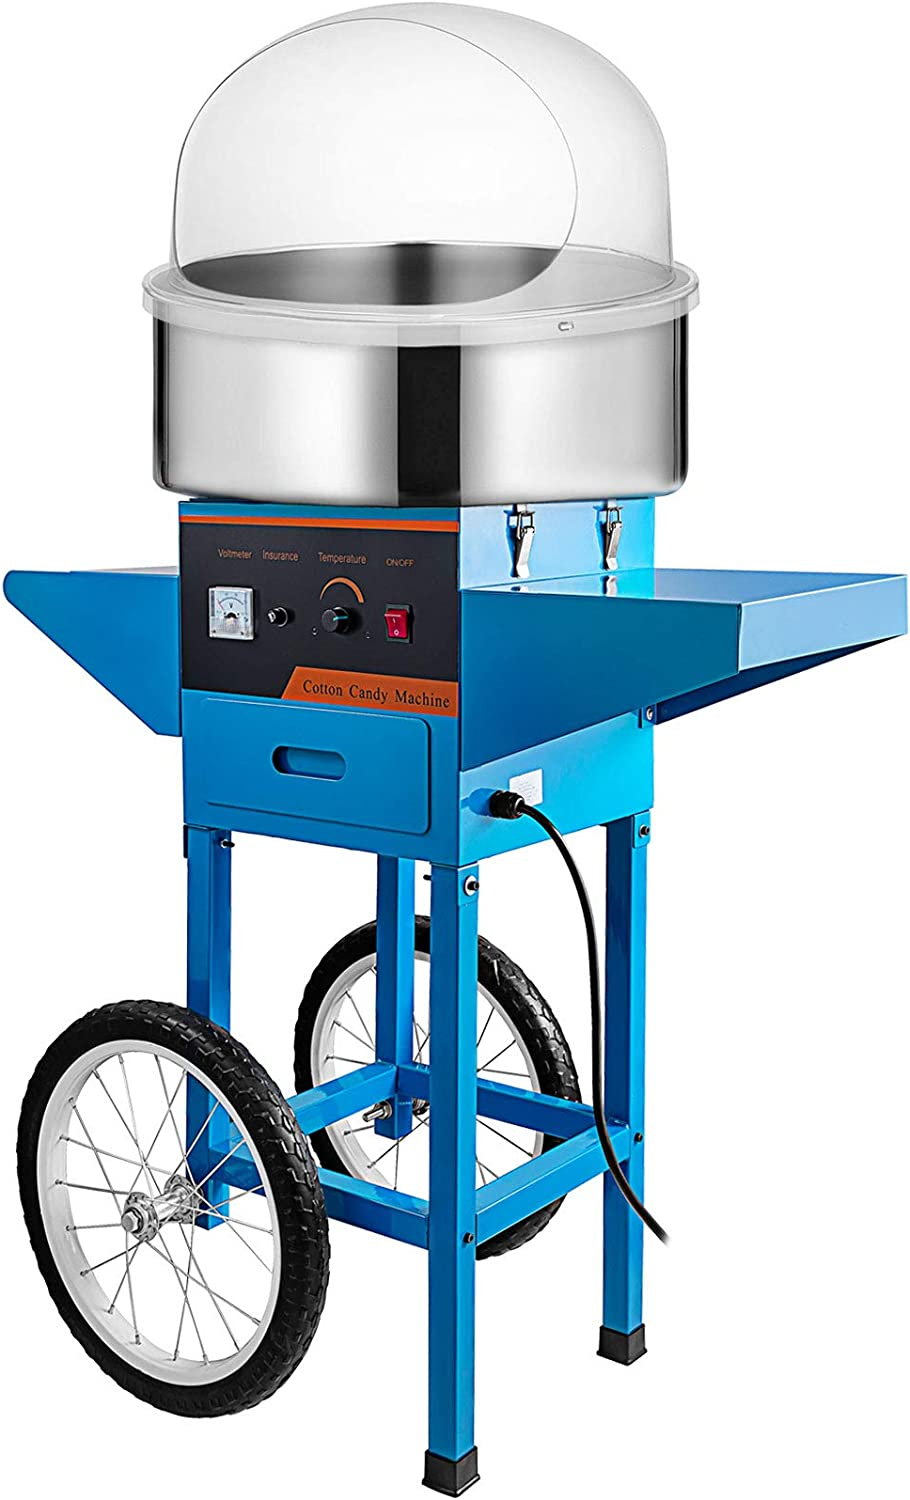 Commercial Cotton Candy Machines